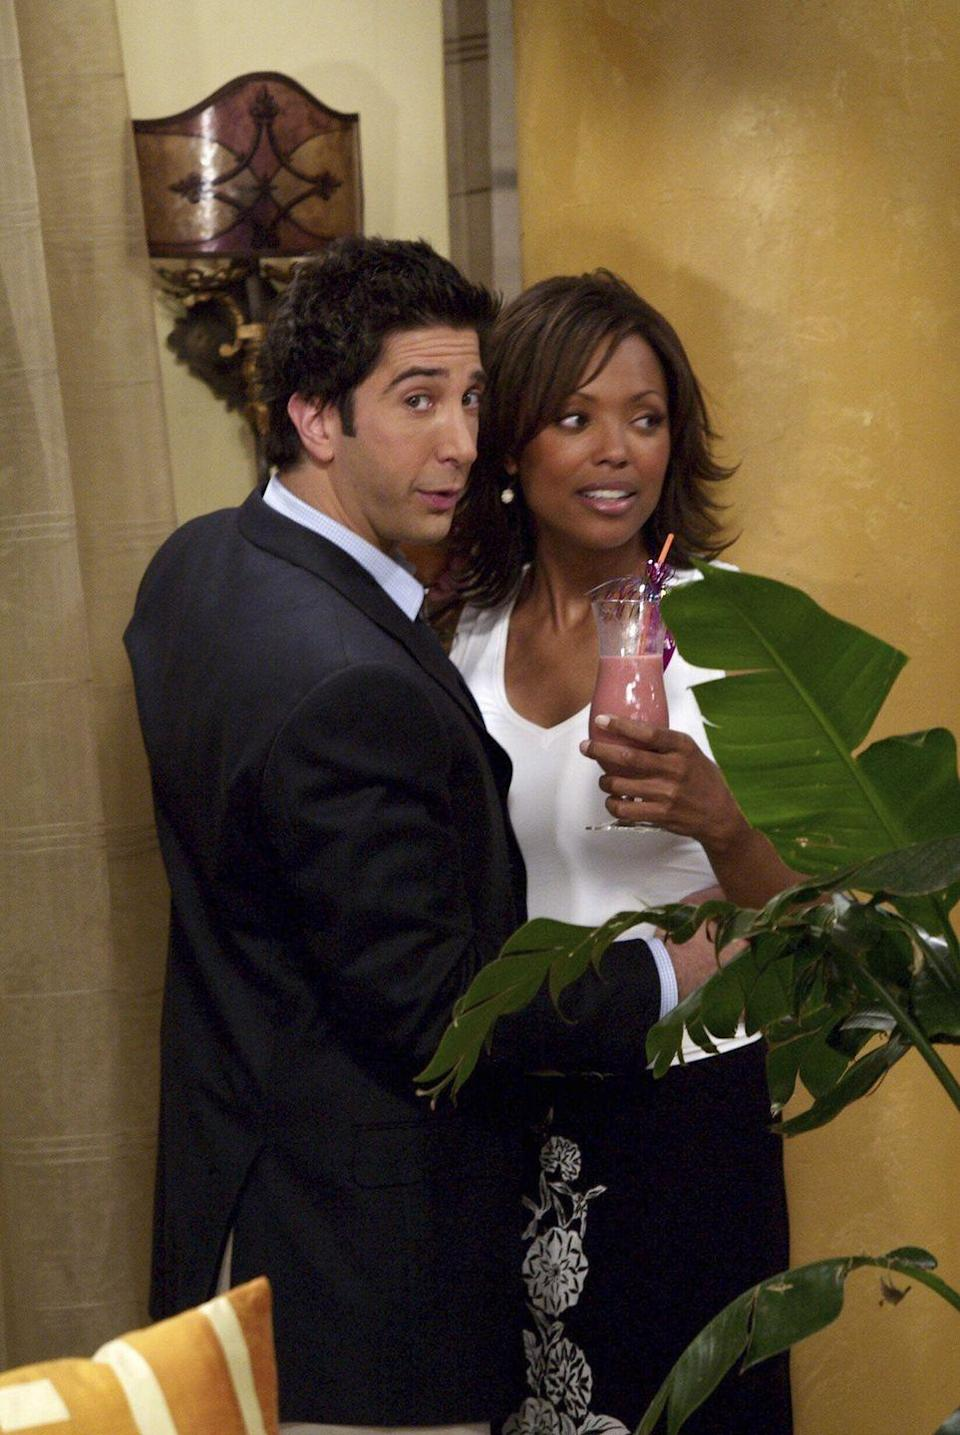 <p>Aisha Tyler started out on the show as Joey's smart paleontologist girlfriend, Charlie. But by the end of her season 9 stint on the show, she had moved on to the more compatible Ross.</p>